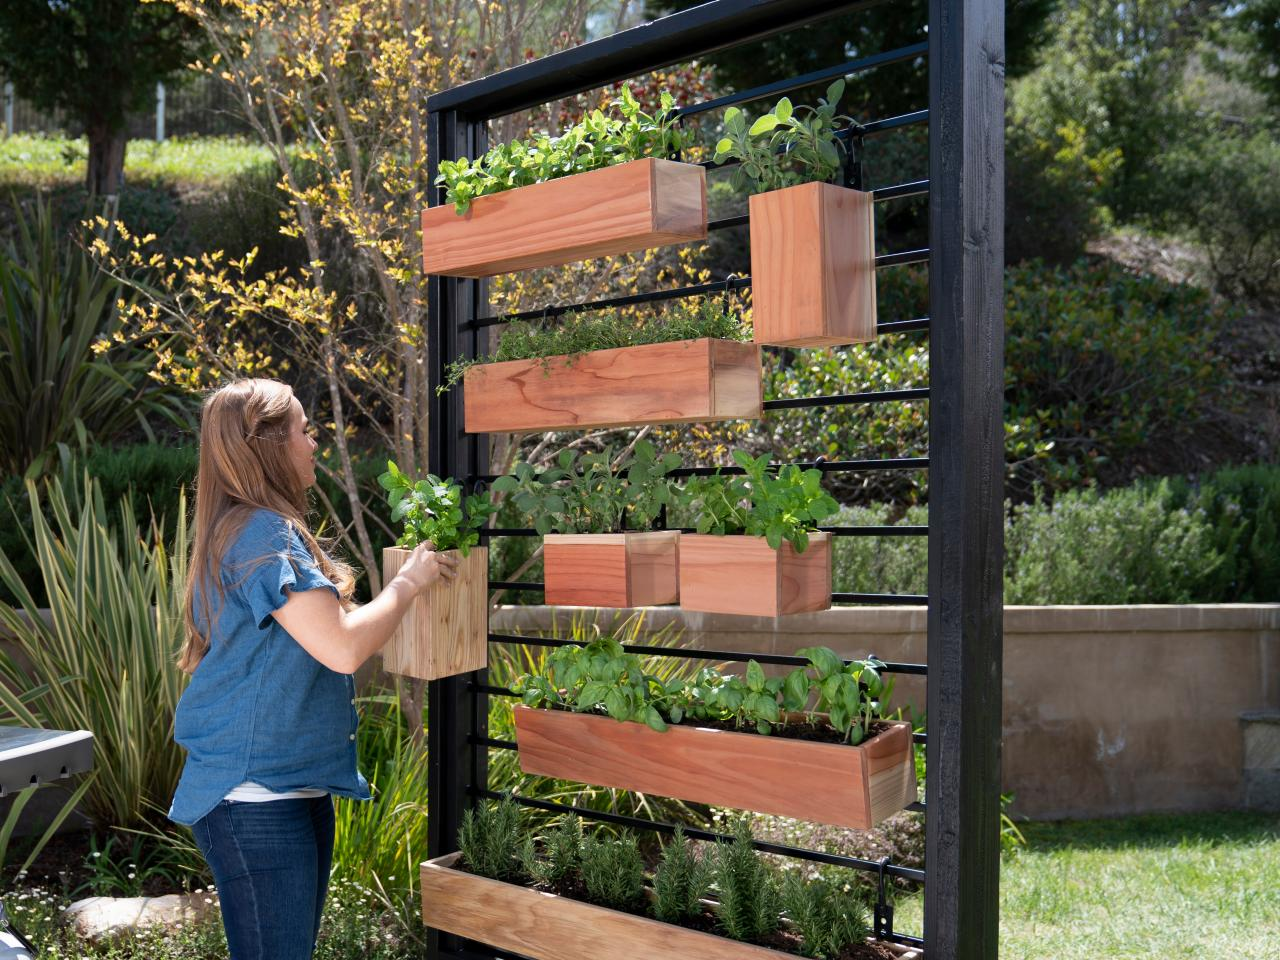 20 How To Build Your Own Vertical Garden With A Pallet